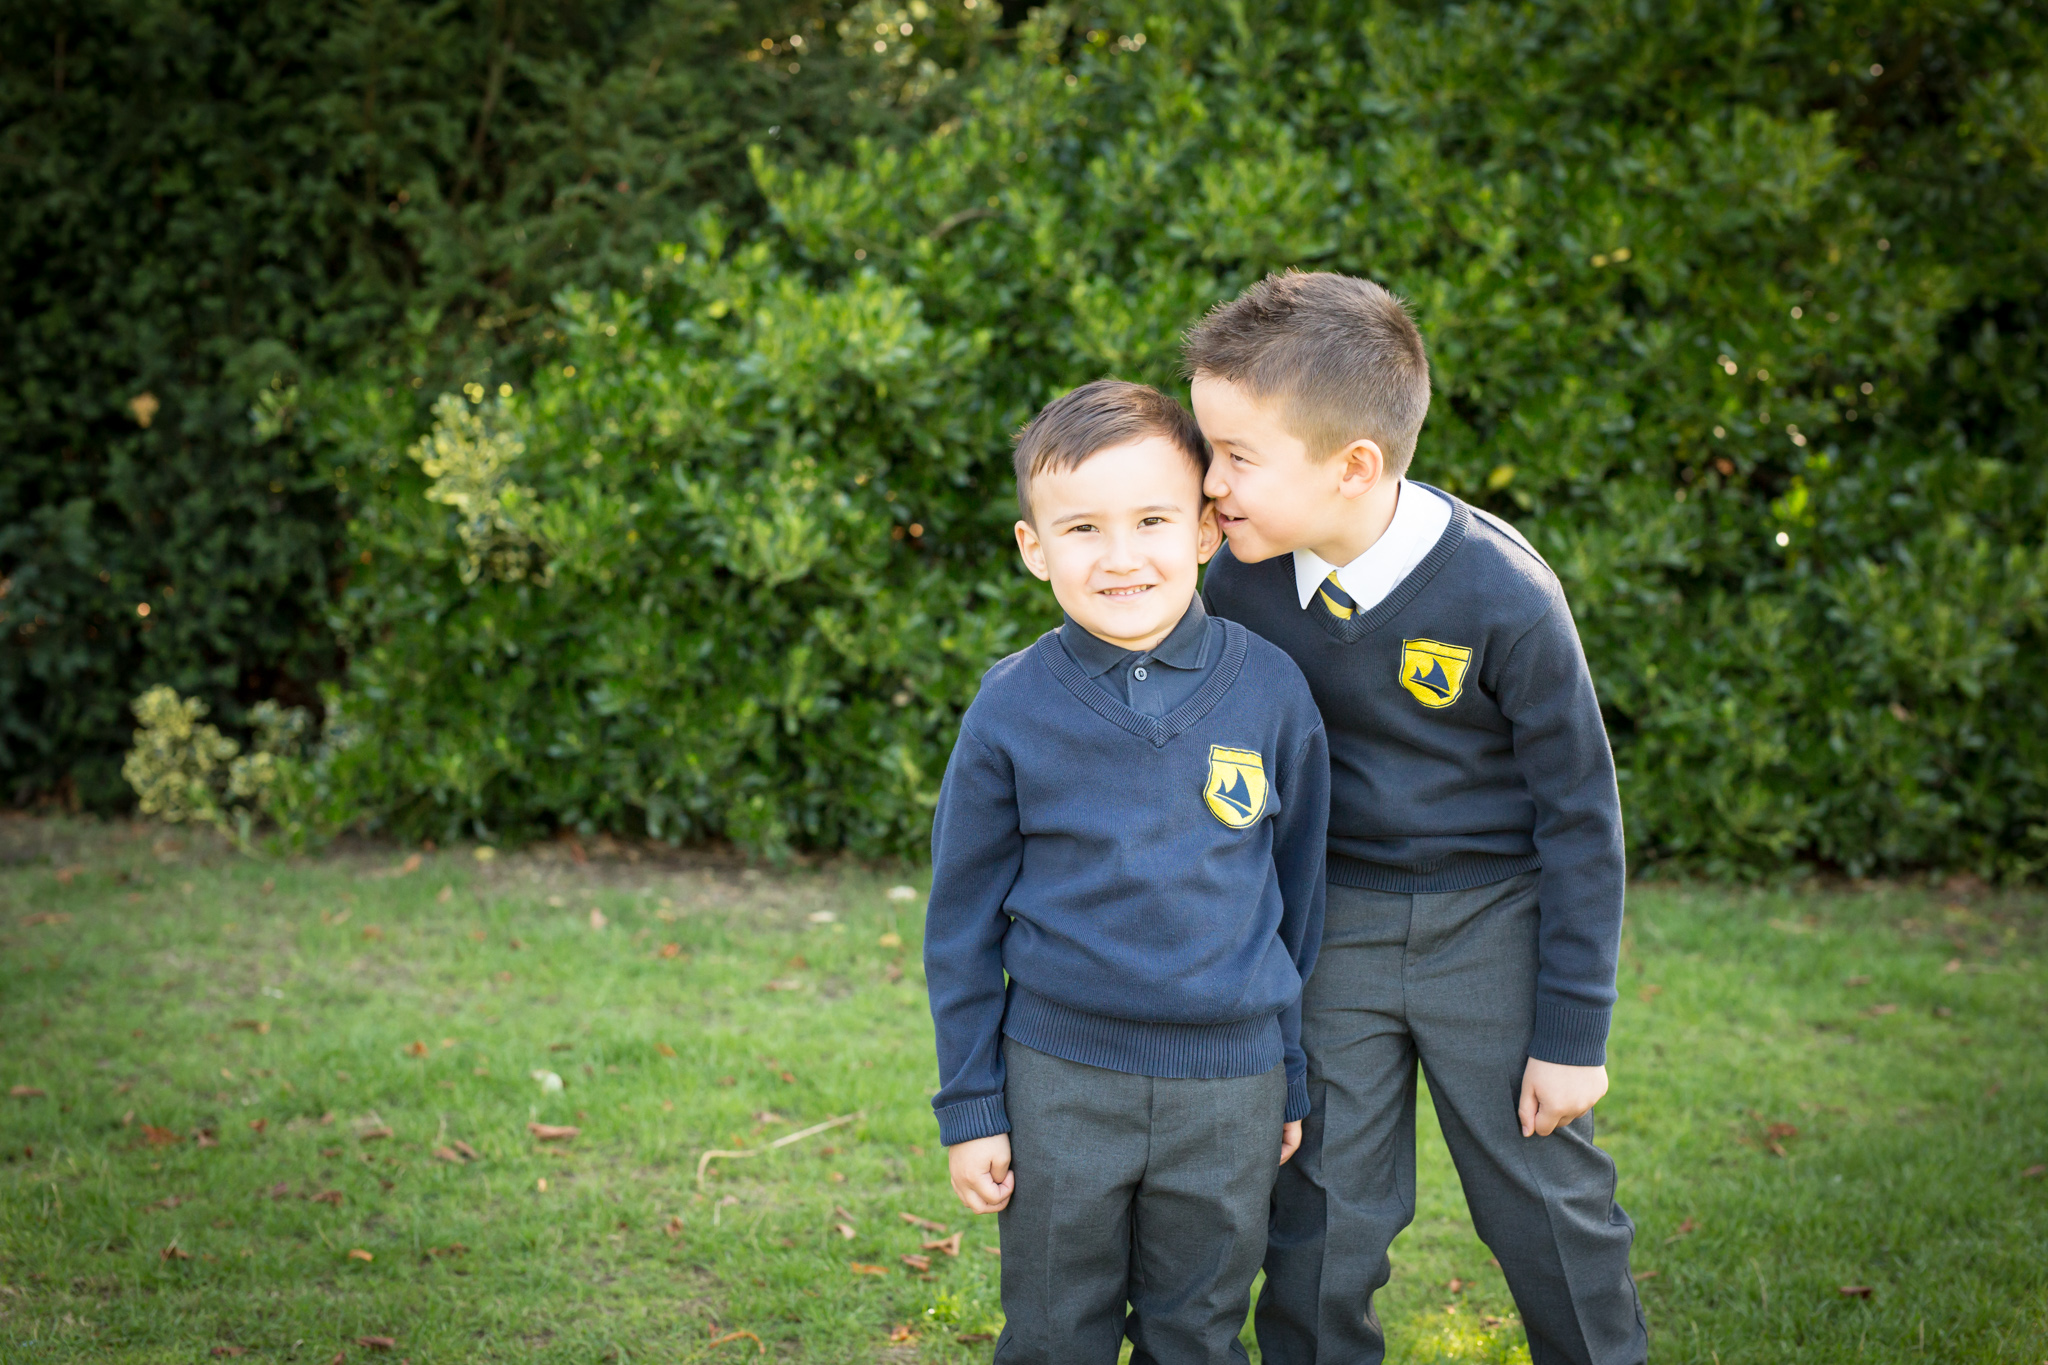 Brothers school photo outside in Beckenham